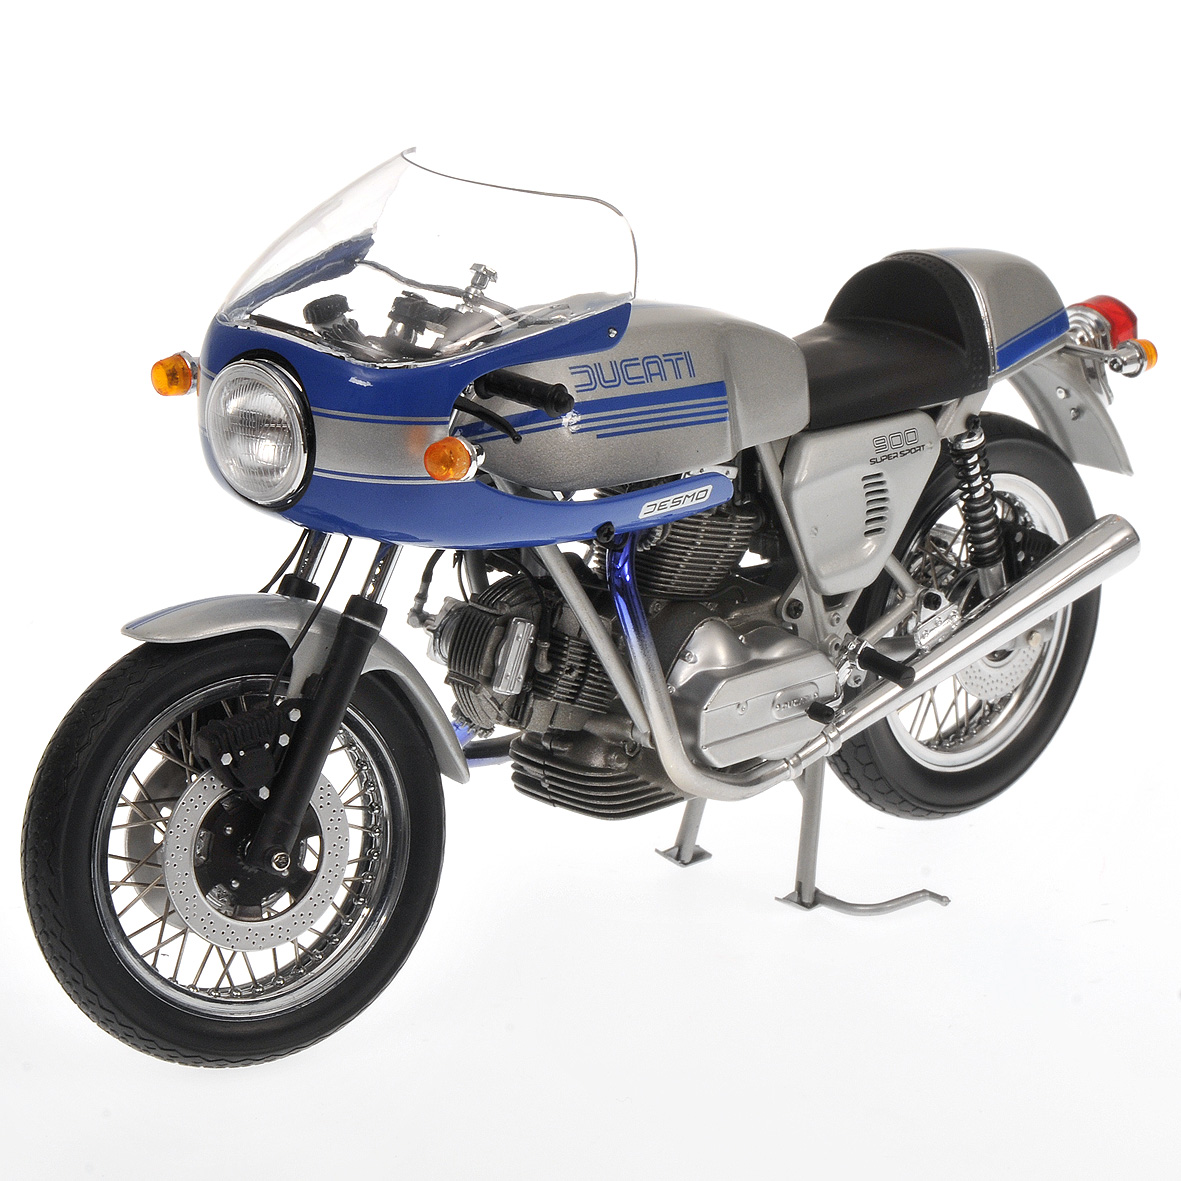 Ducati 900 SS 1977 images #58177